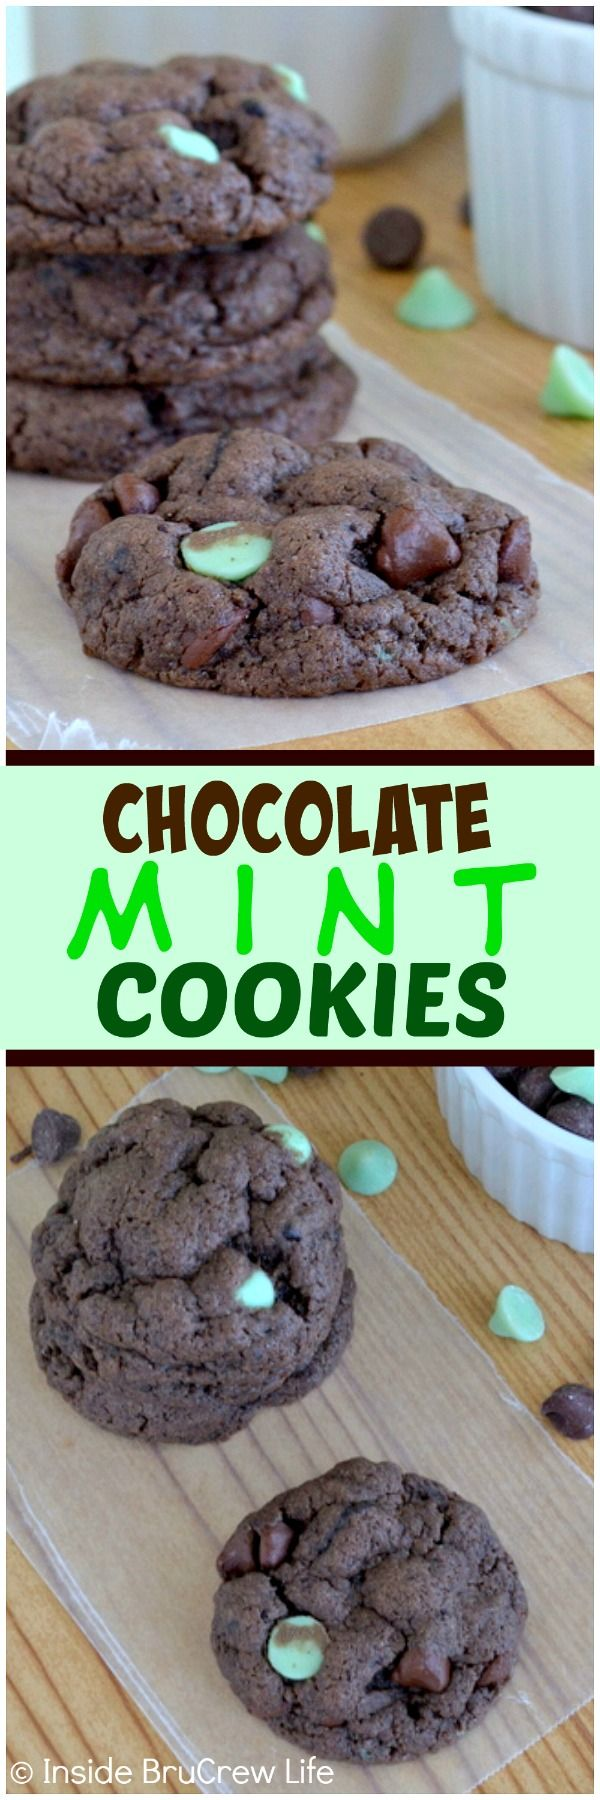 Chocolate Mint Cookies - adding cookie chunks and mint chocolate chips to these easy chocolate cookies makes this the best holiday cookie recipe!